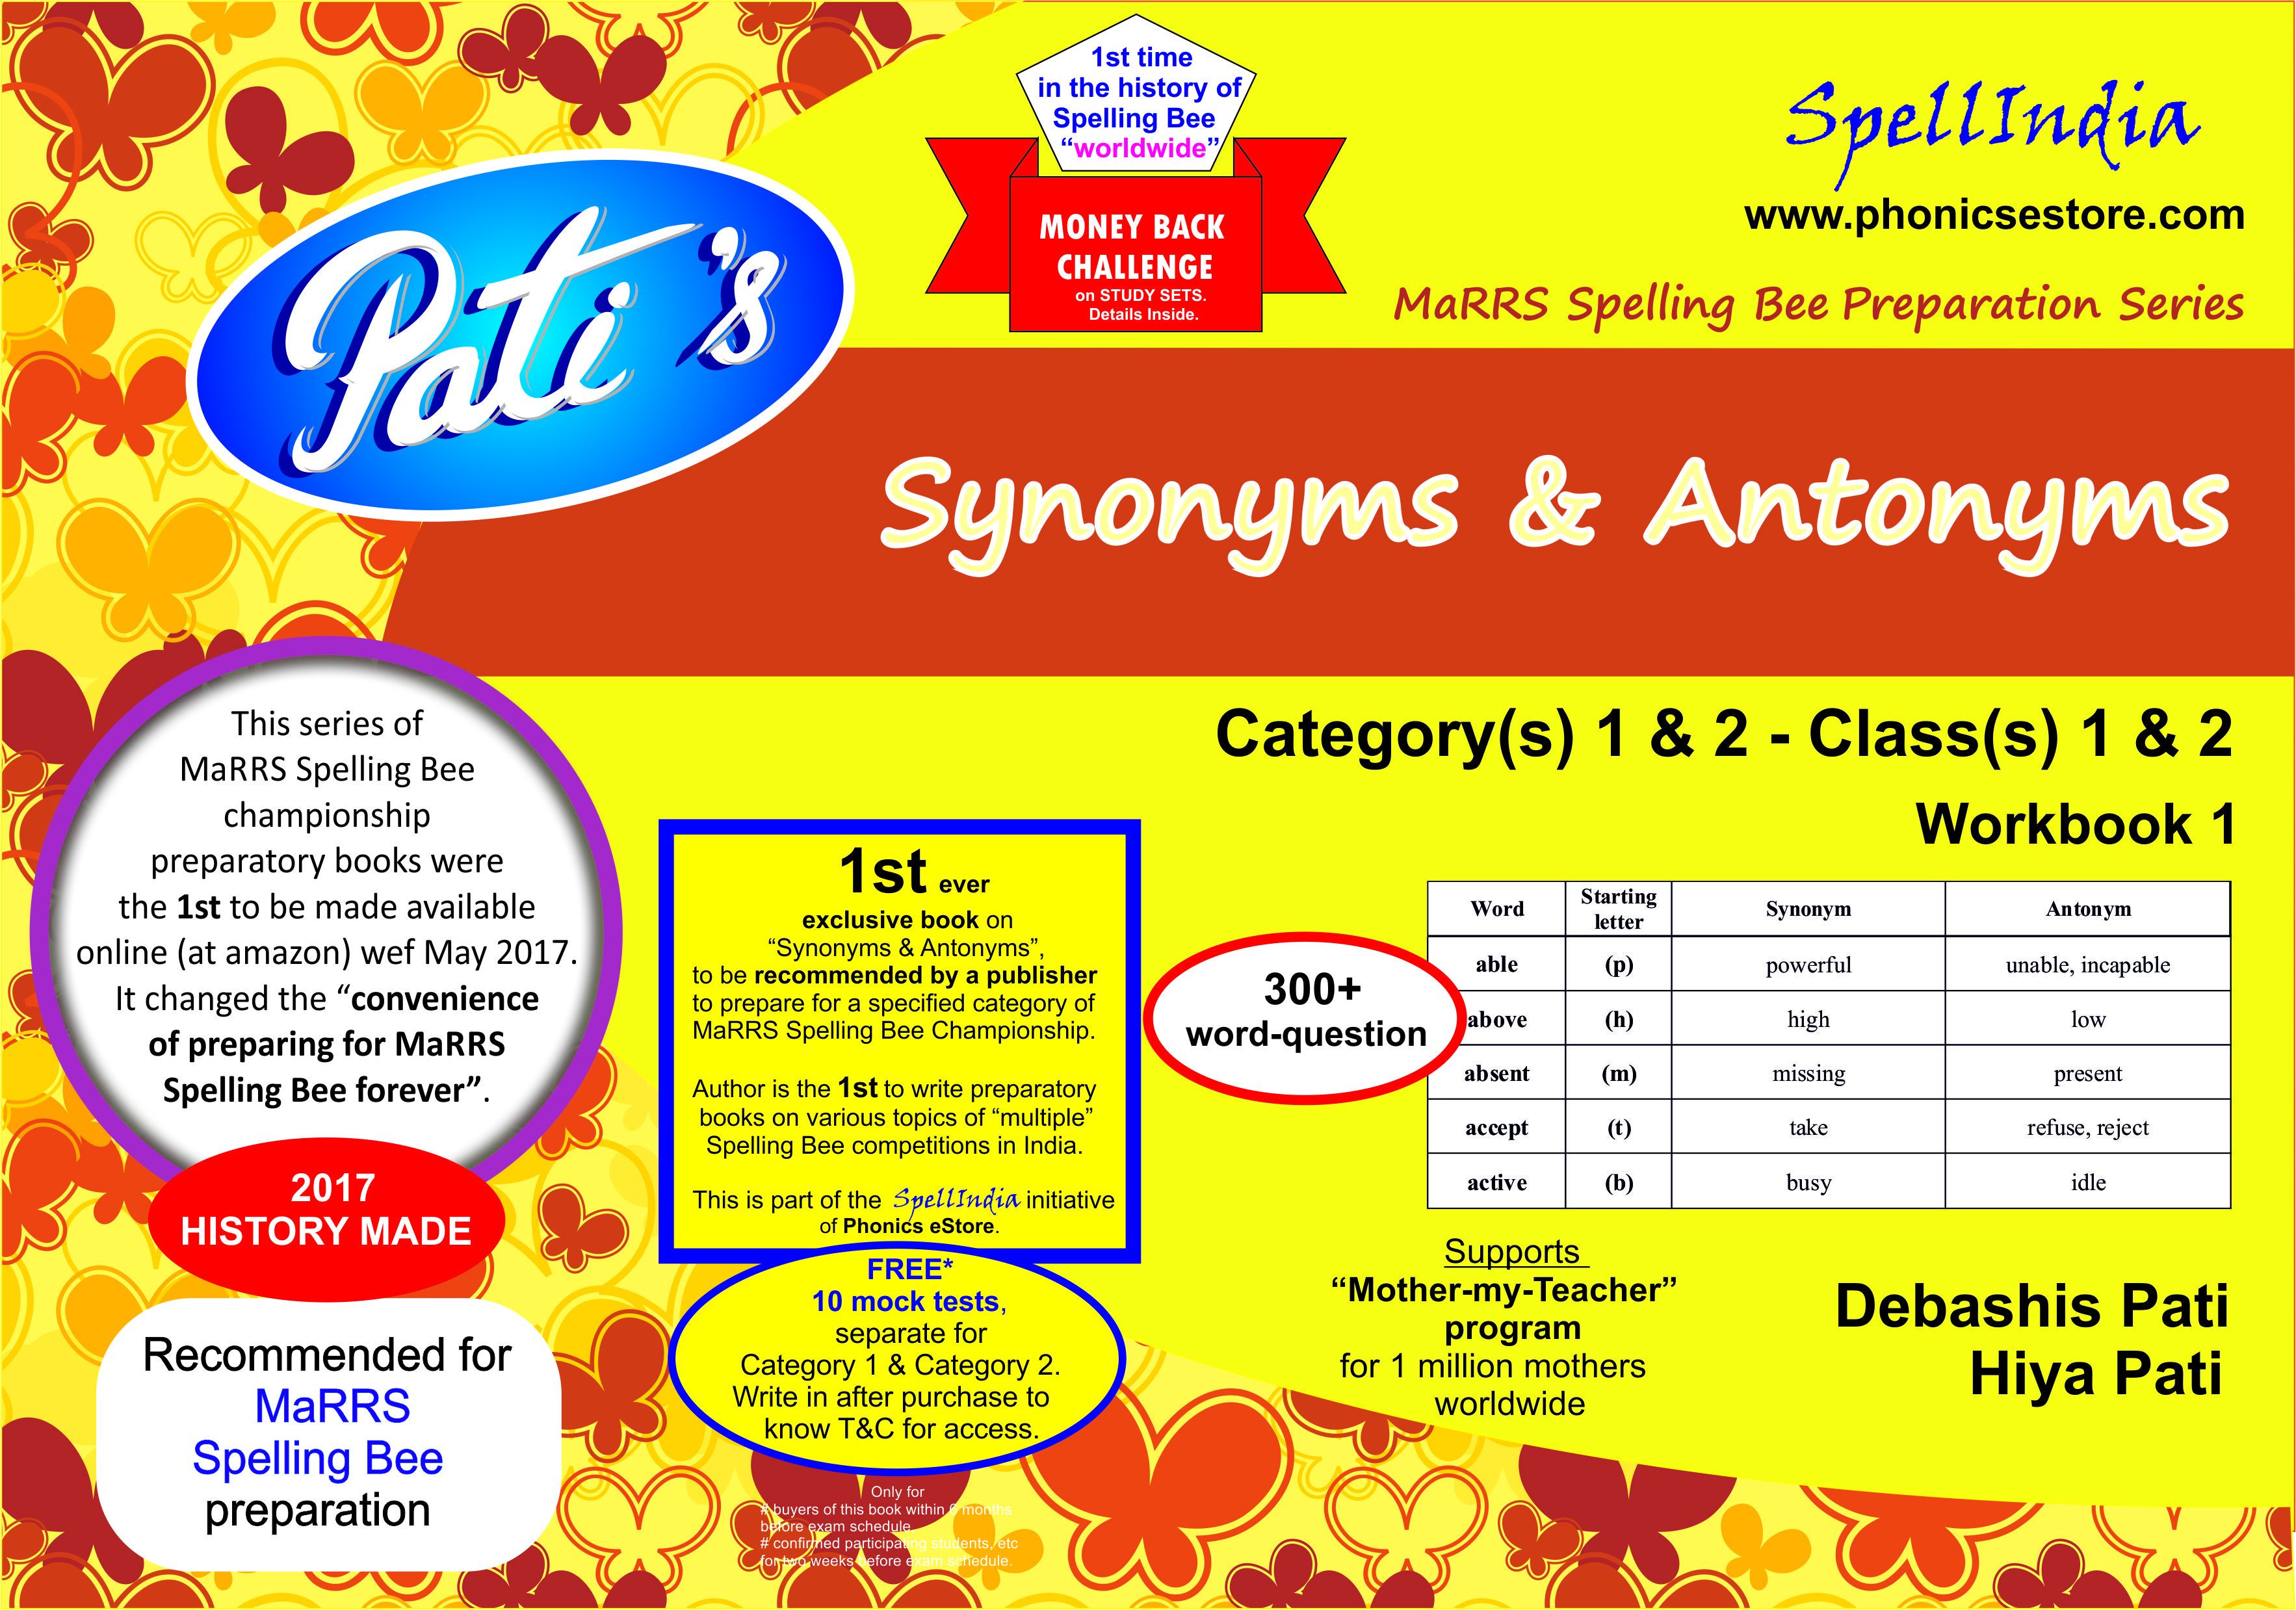 synonyms antonyms marrs spell bee book